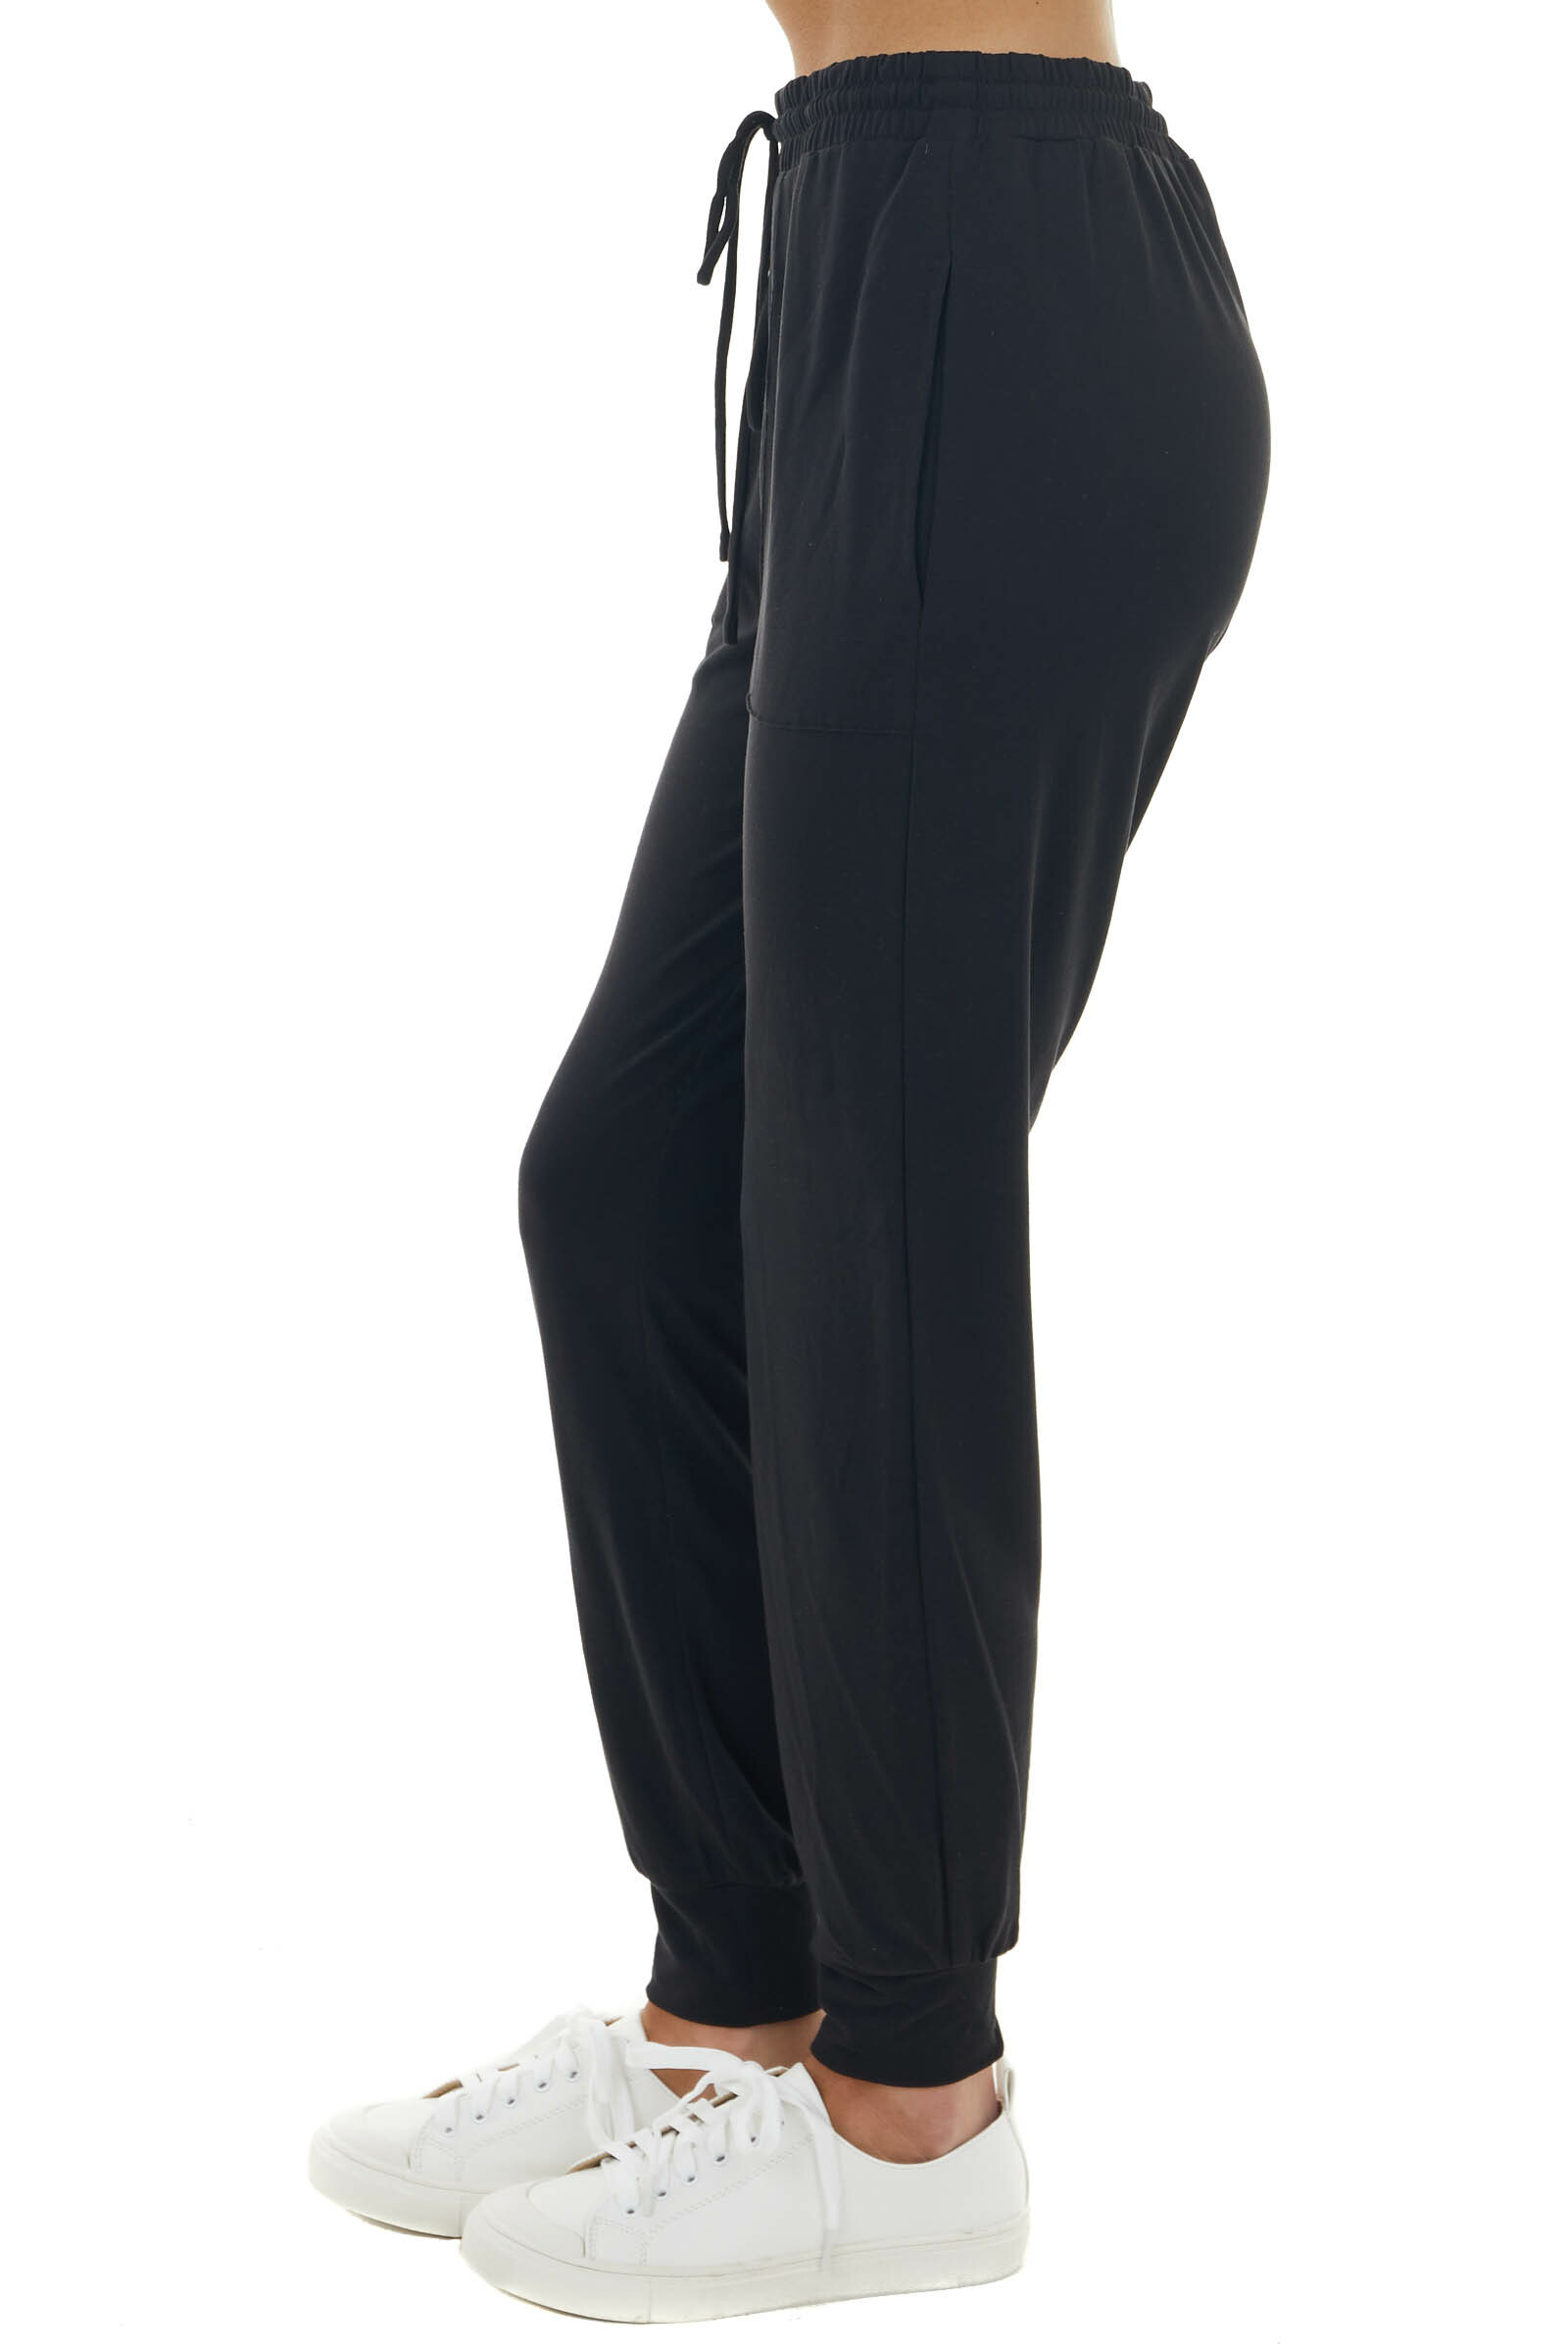 Black Stretchy Knit Joggers with Functional Drawstring